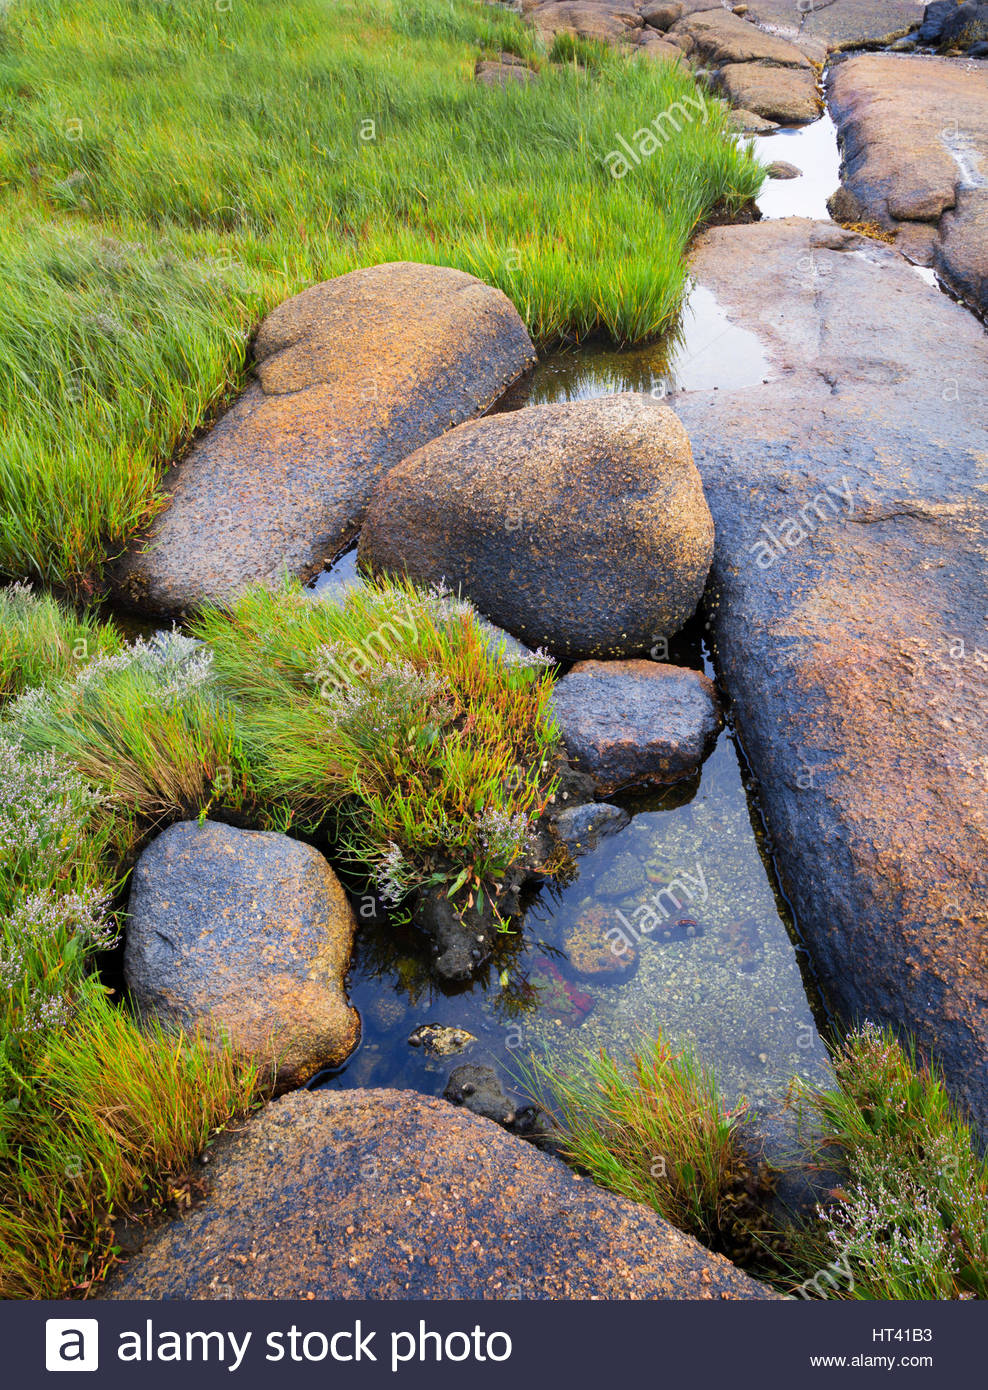 0902-1012 Tide pools with saltmeadow cord grass [Spartina patens] with blooming sea lavender [Limonium carolinianum], - Stock Image